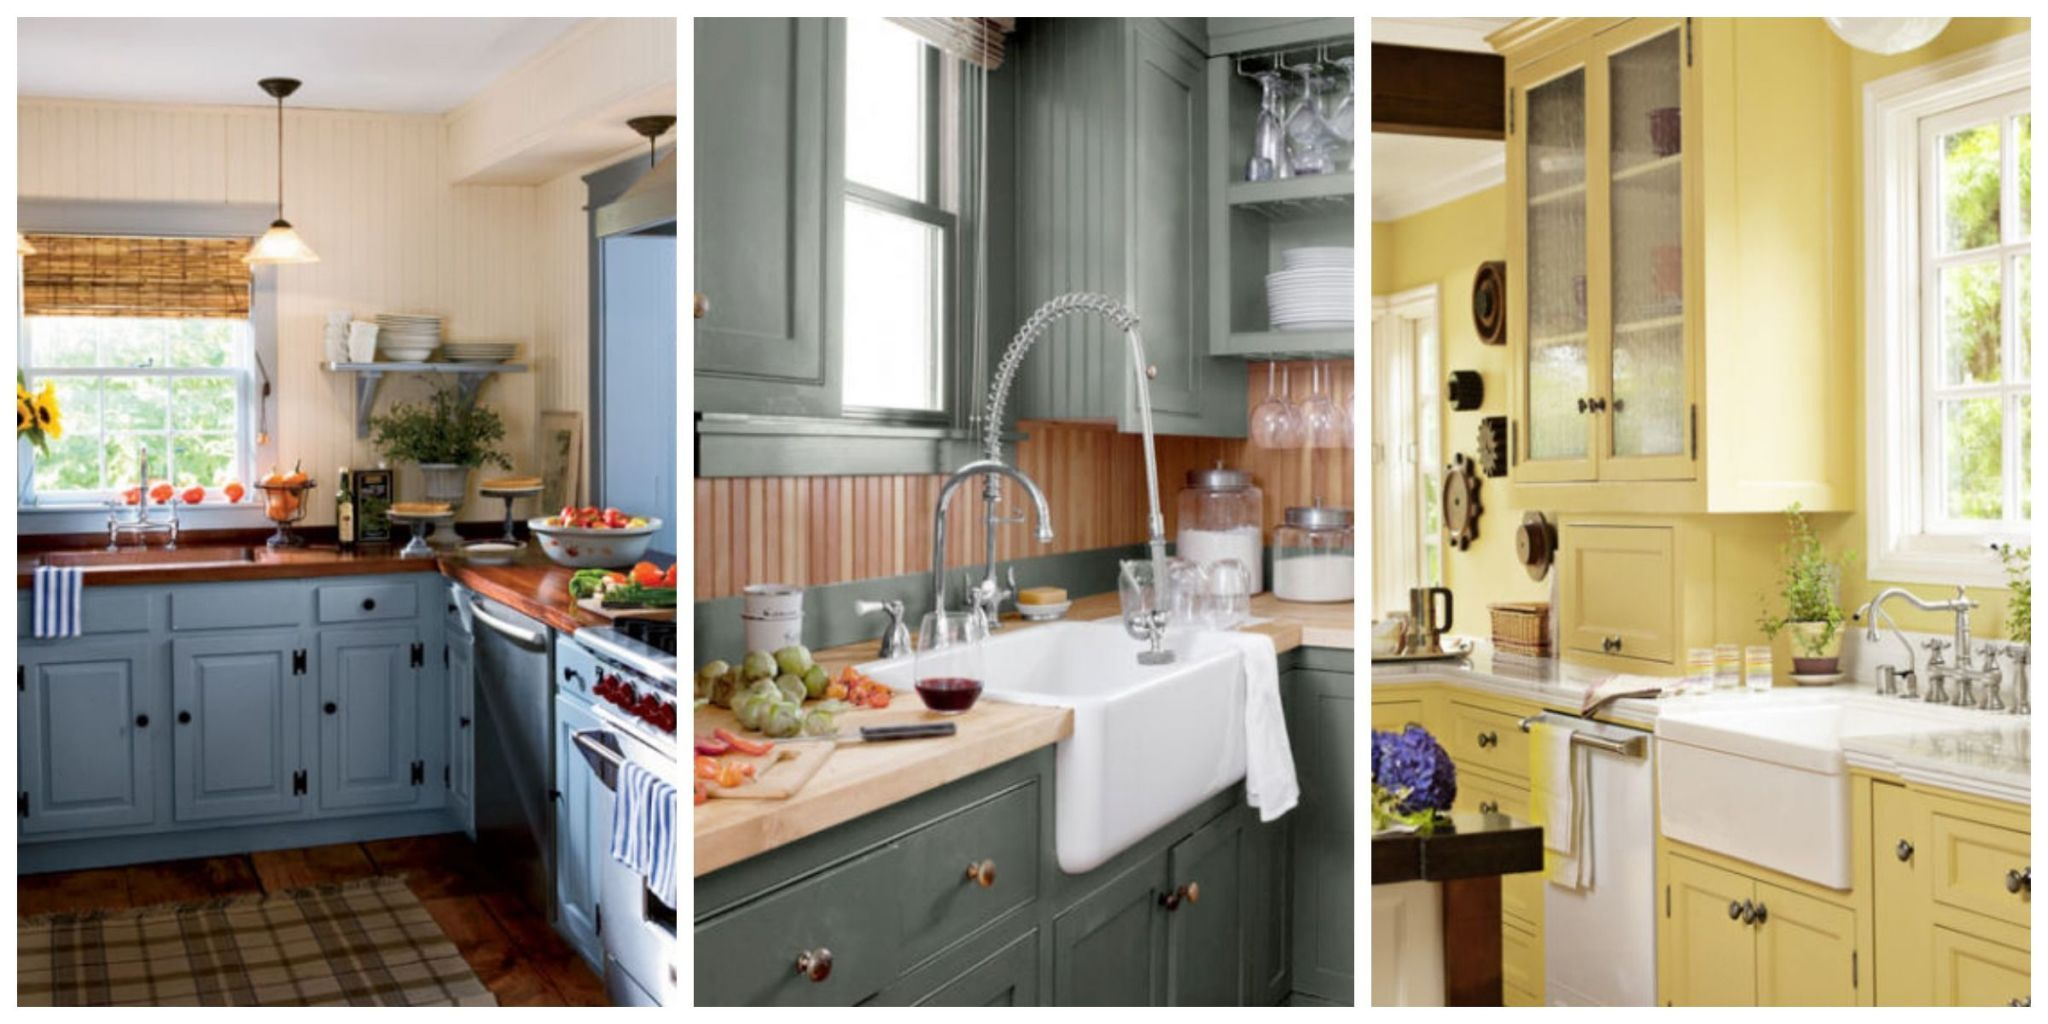 Create A Beautiful And Colorful Kitchen With These Paint And Decorating  Ideas. Also, Check Out These 100+ Kitchen Design Ideas For More Inspiration.